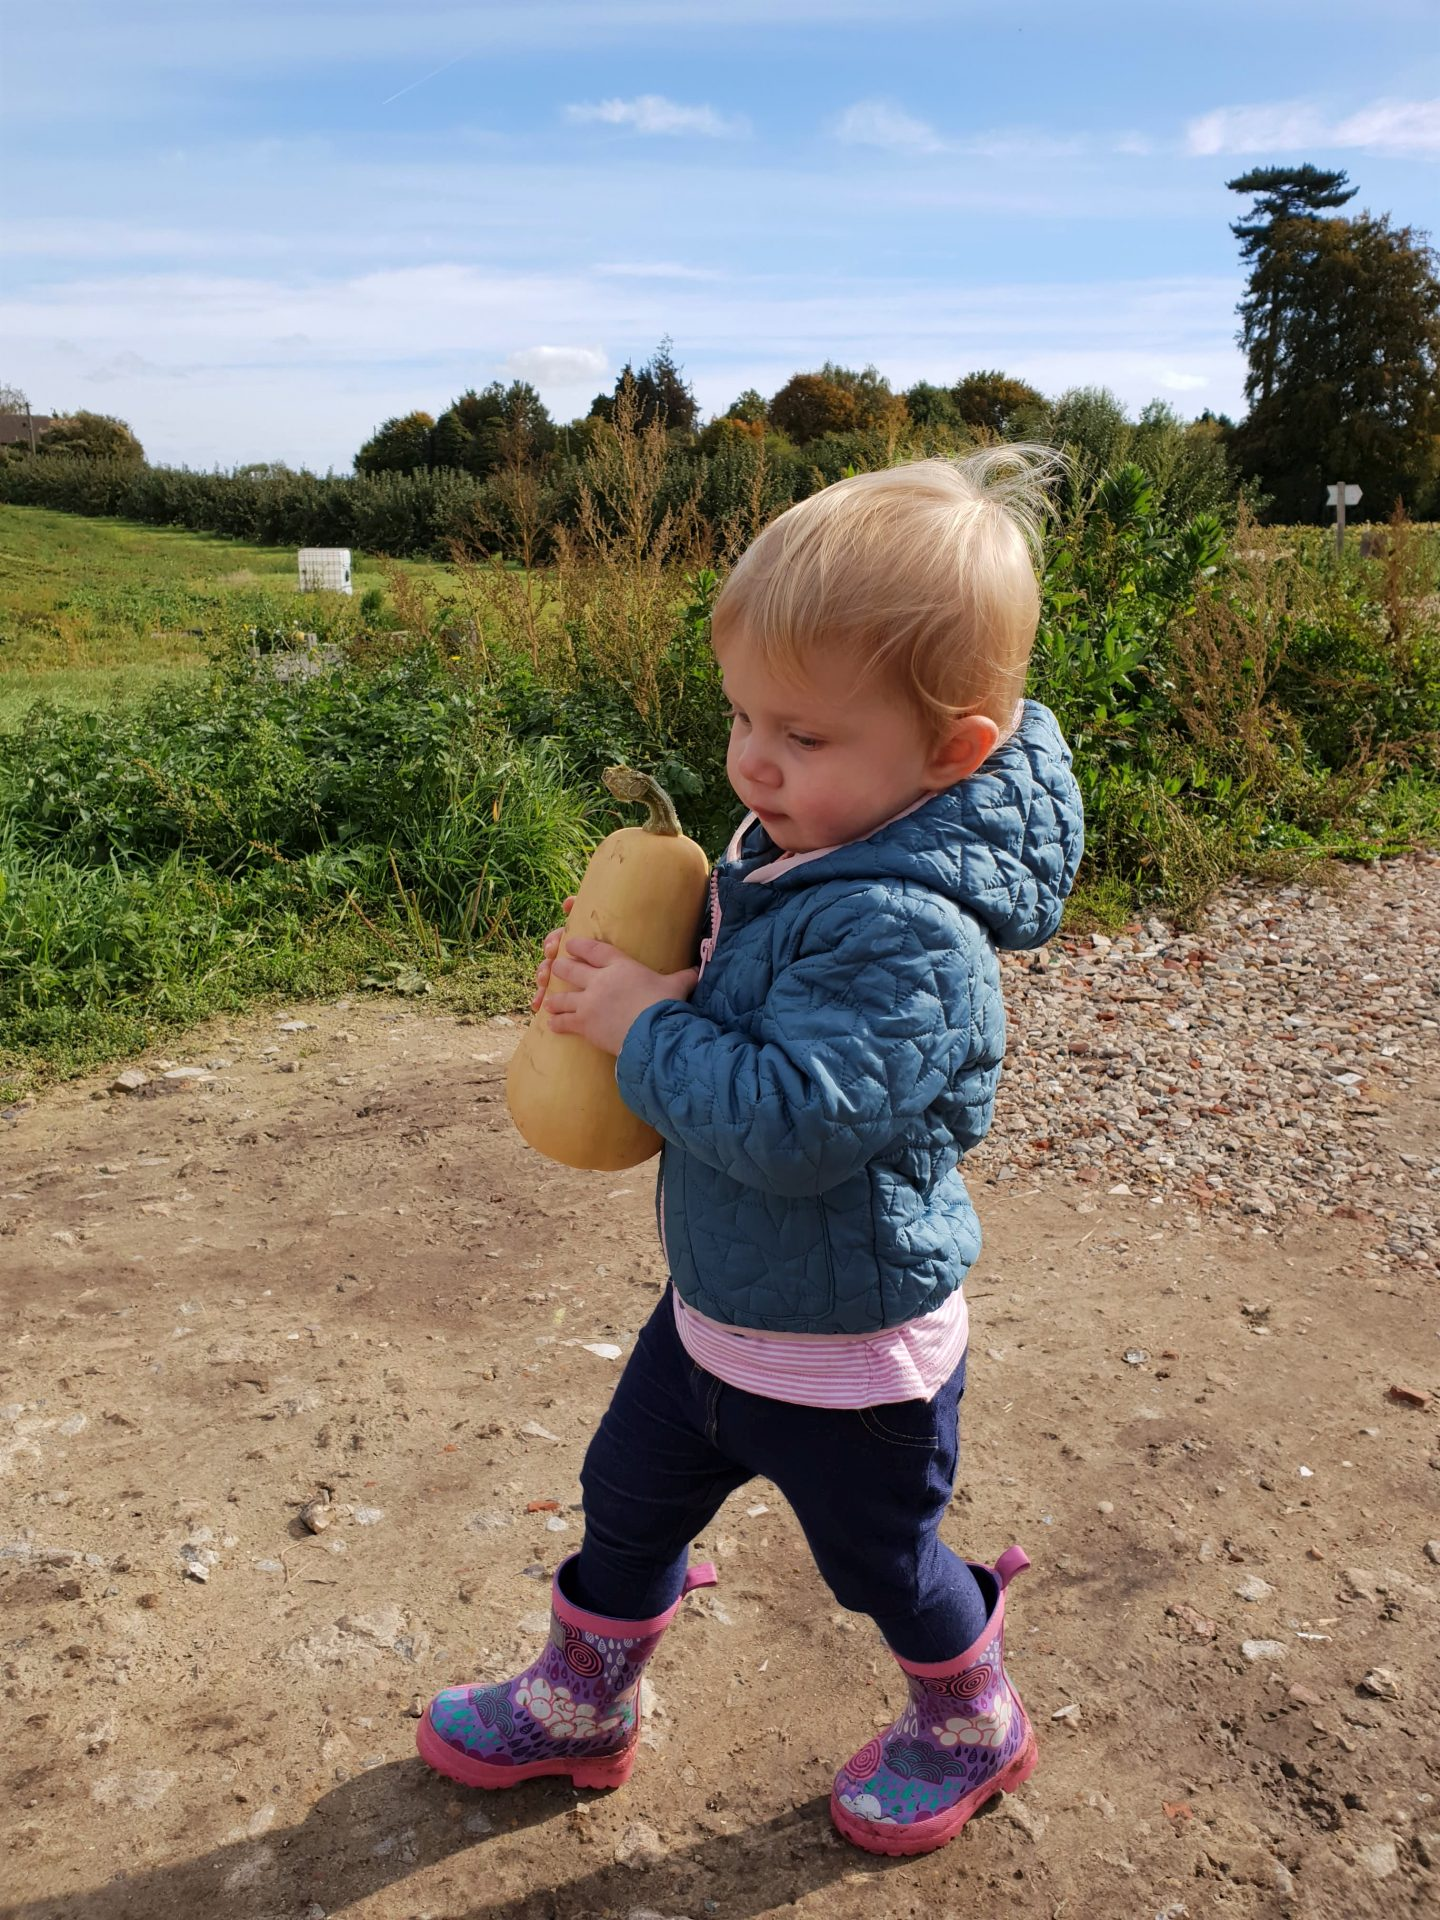 Toddler on farm in Meopham with butternut squash